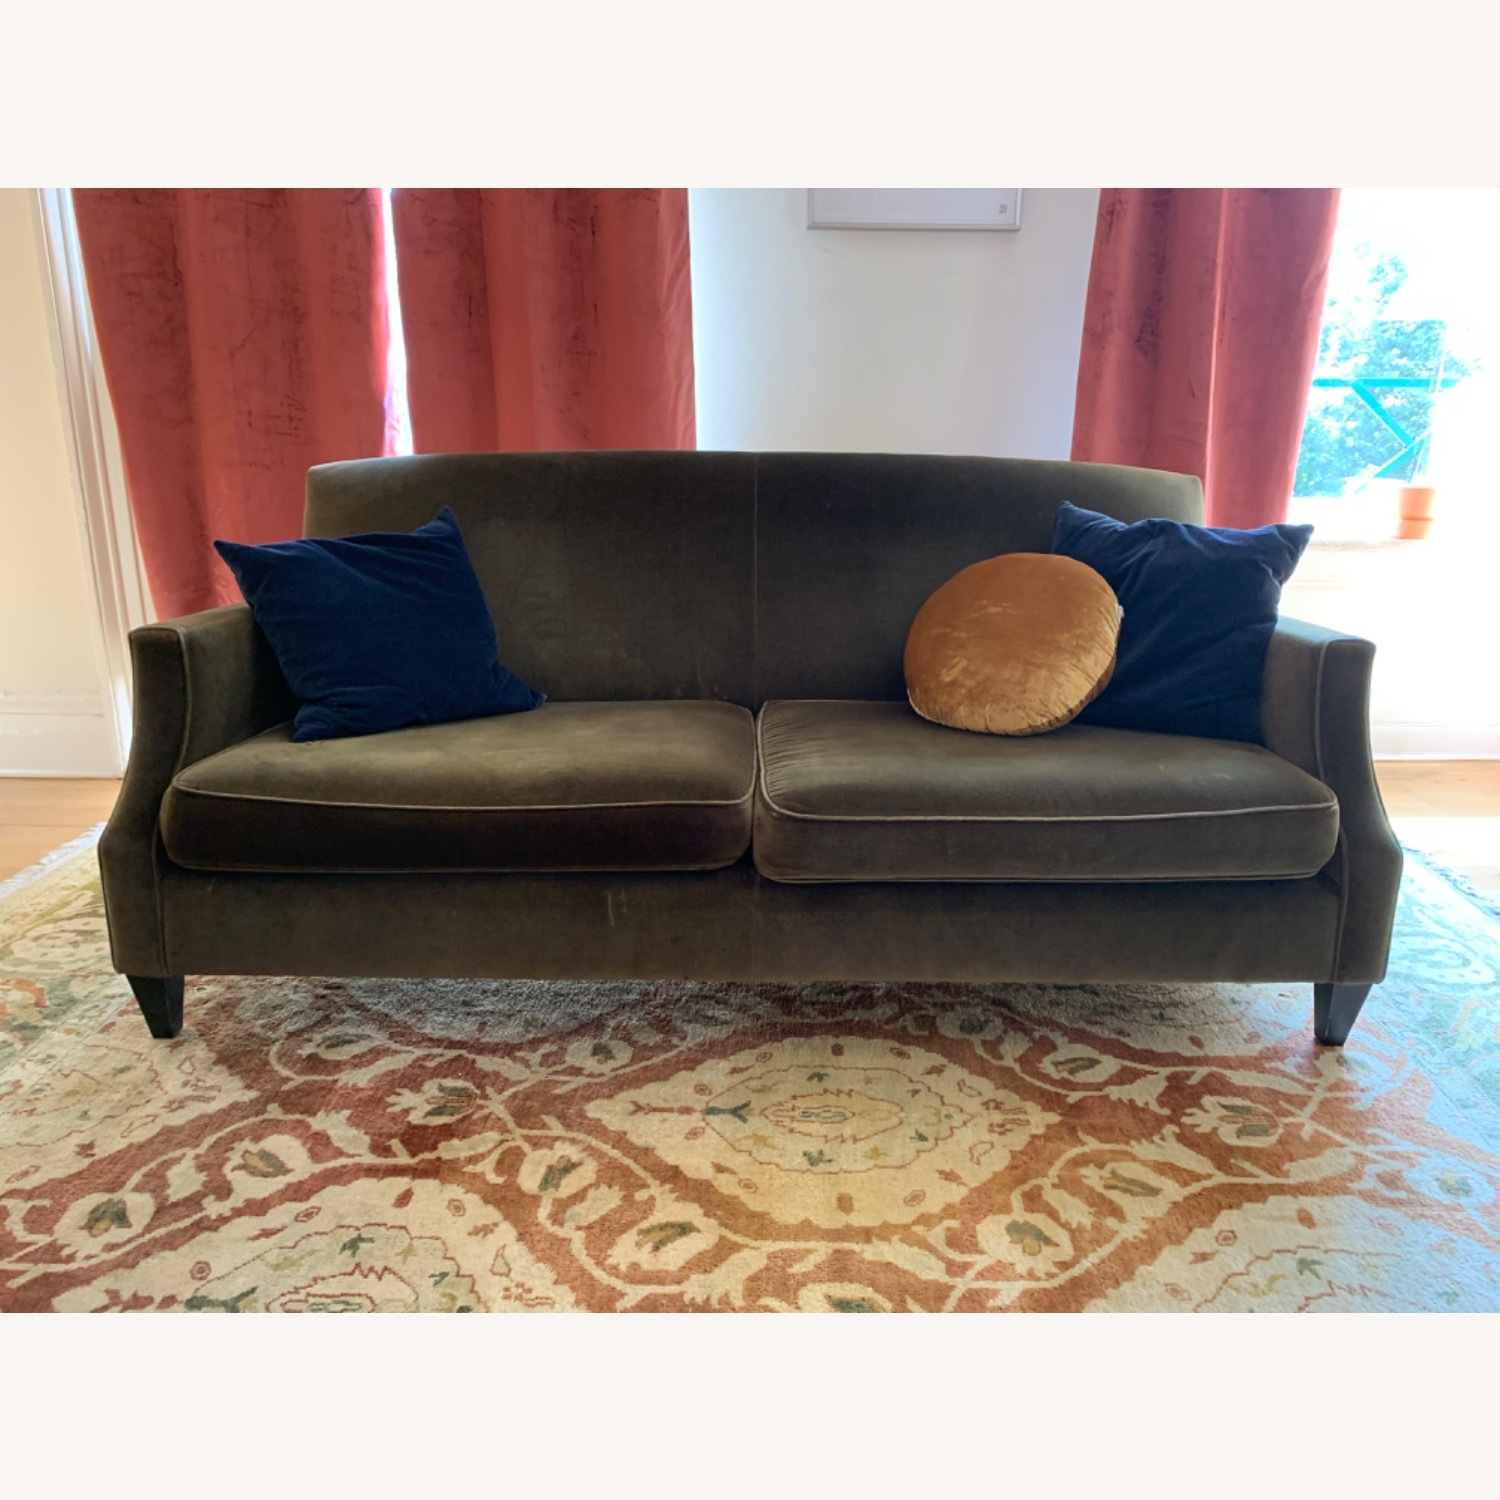 Crate & Barrel Green Velvet Couch - image-1